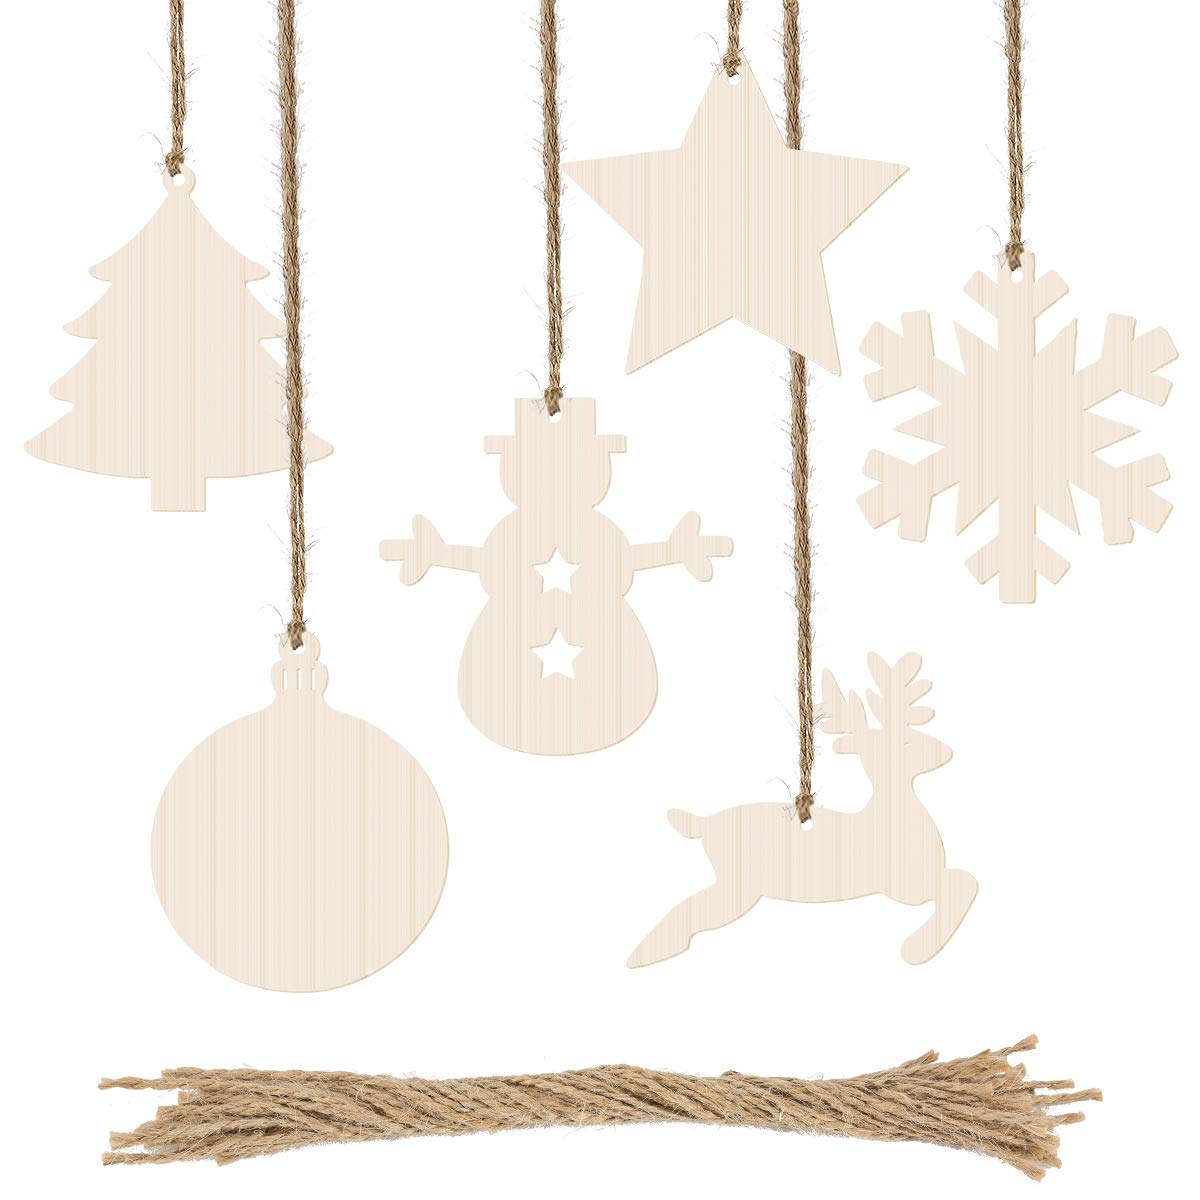 Biubee 60 Pcs Christmas Wooden Cutouts- Christmas Wood Slices Wooden Hanging Ornaments with Jute Twine for Kids Crafts, Wedding Festival Christmas Tree Embellishments